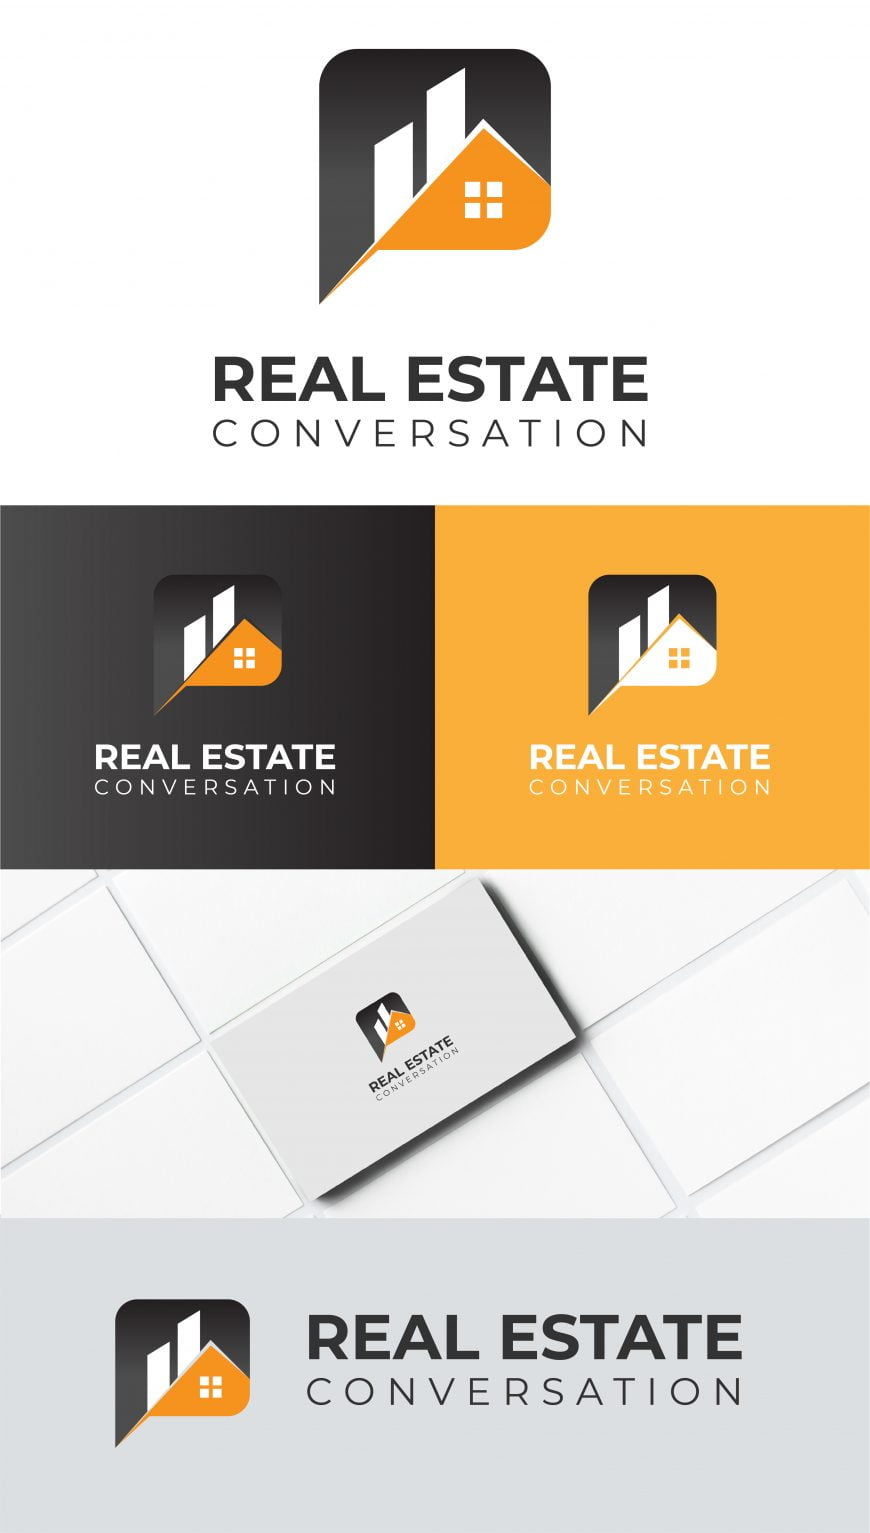 REAL ESTATE LOGO PRESENTATION